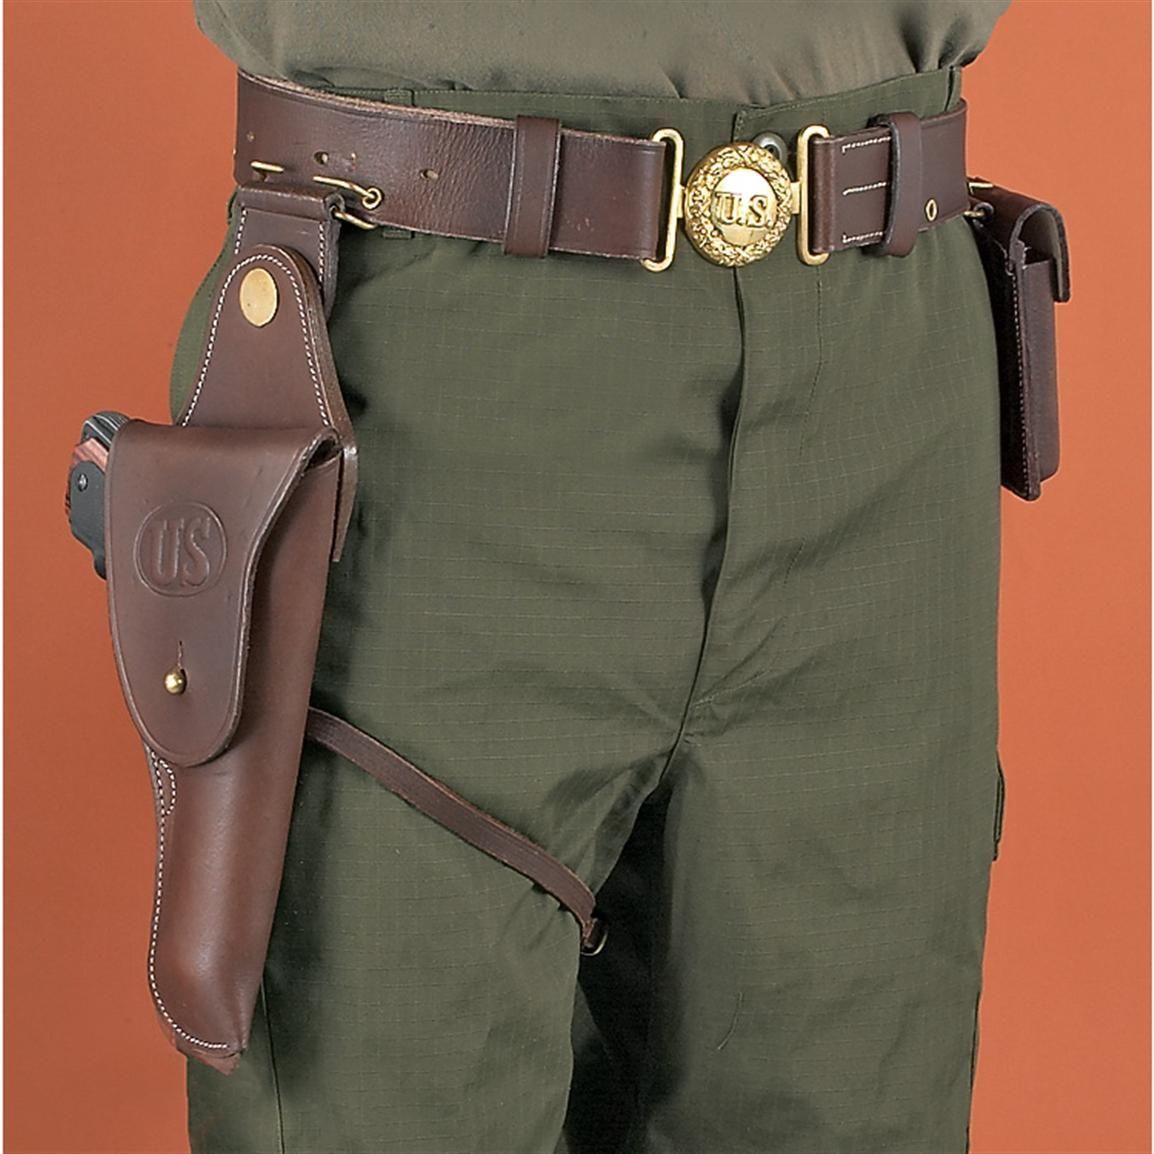 1911 Shoulder Holster with Double Mag Pouch - Google Search ...